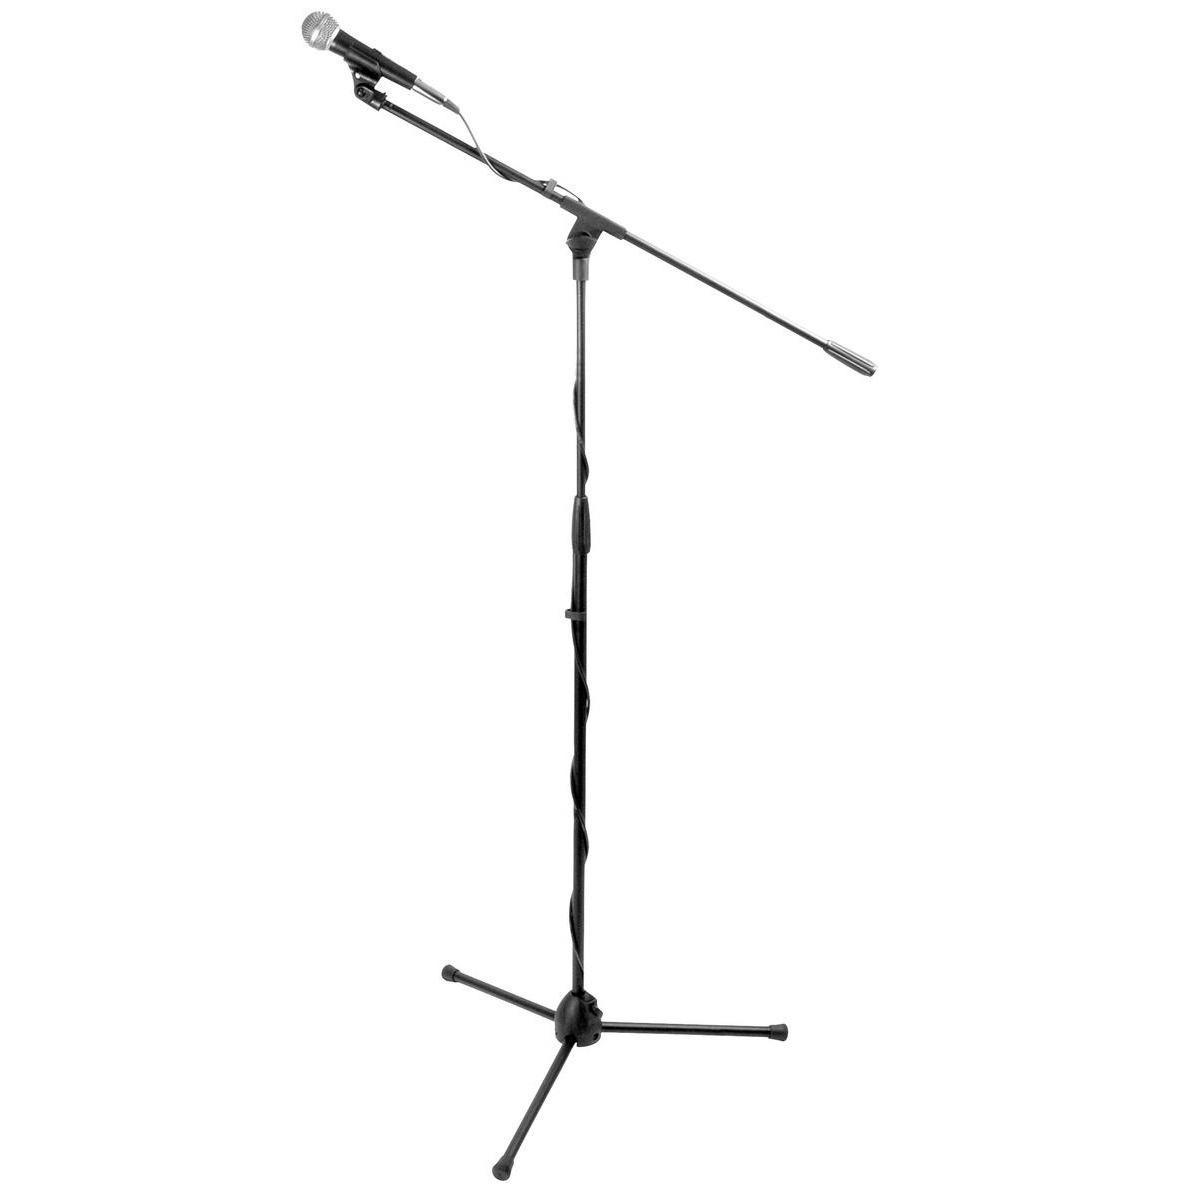 Mic stand clipart 2 » Clipart Portal.